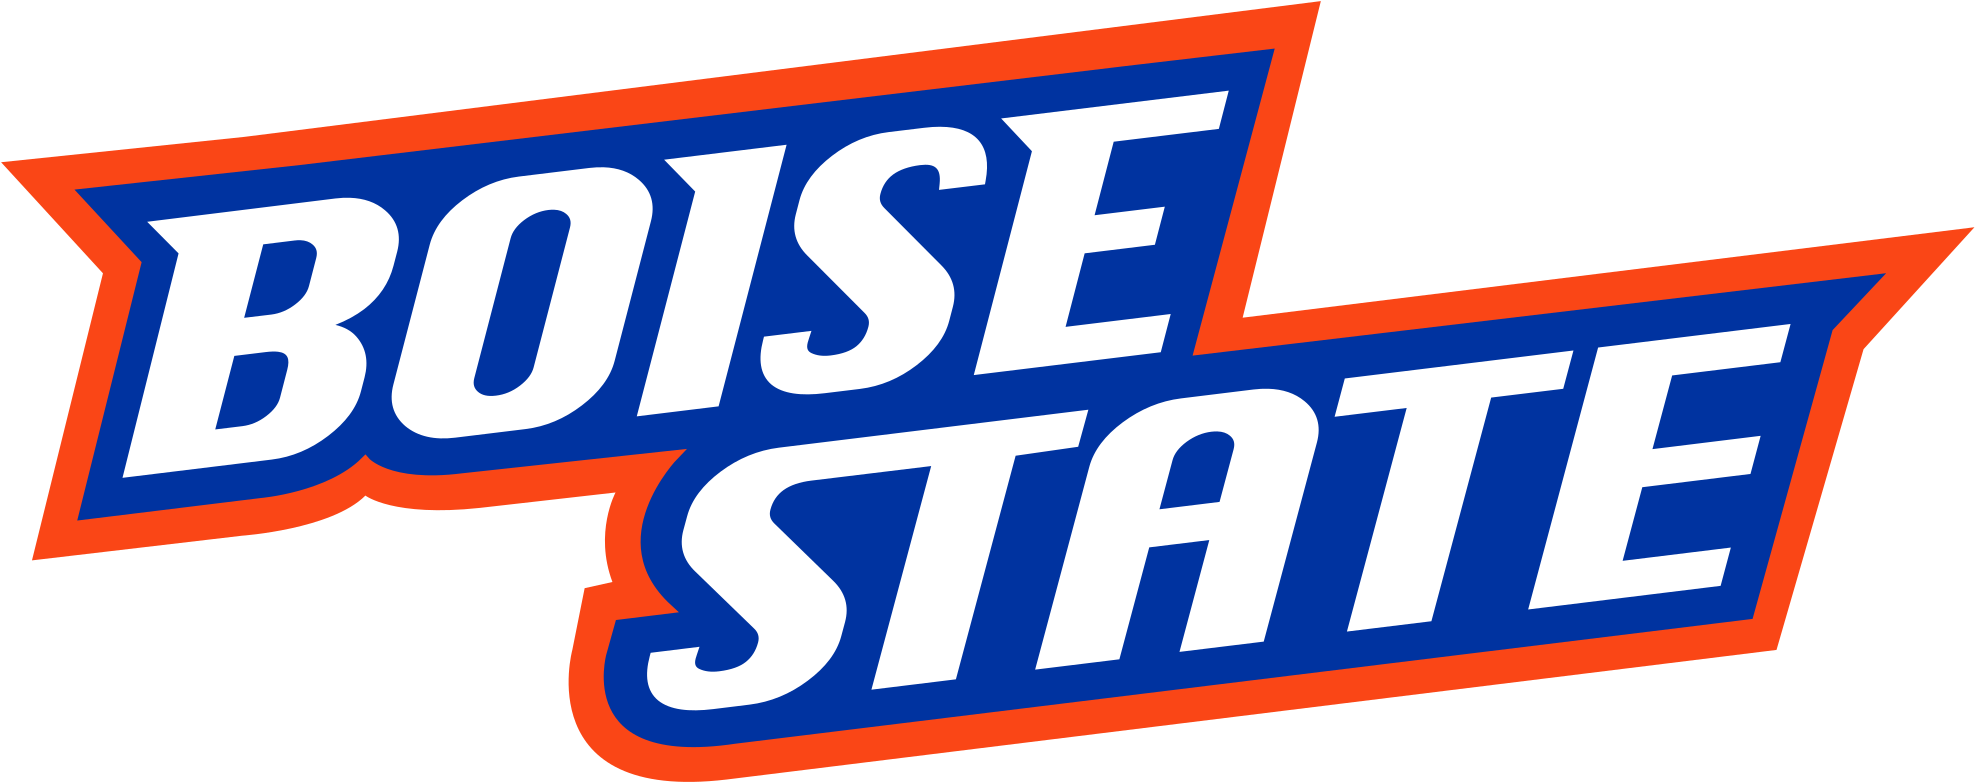 File Boise State Text Logo Svg Wikimedia Commons Printable.